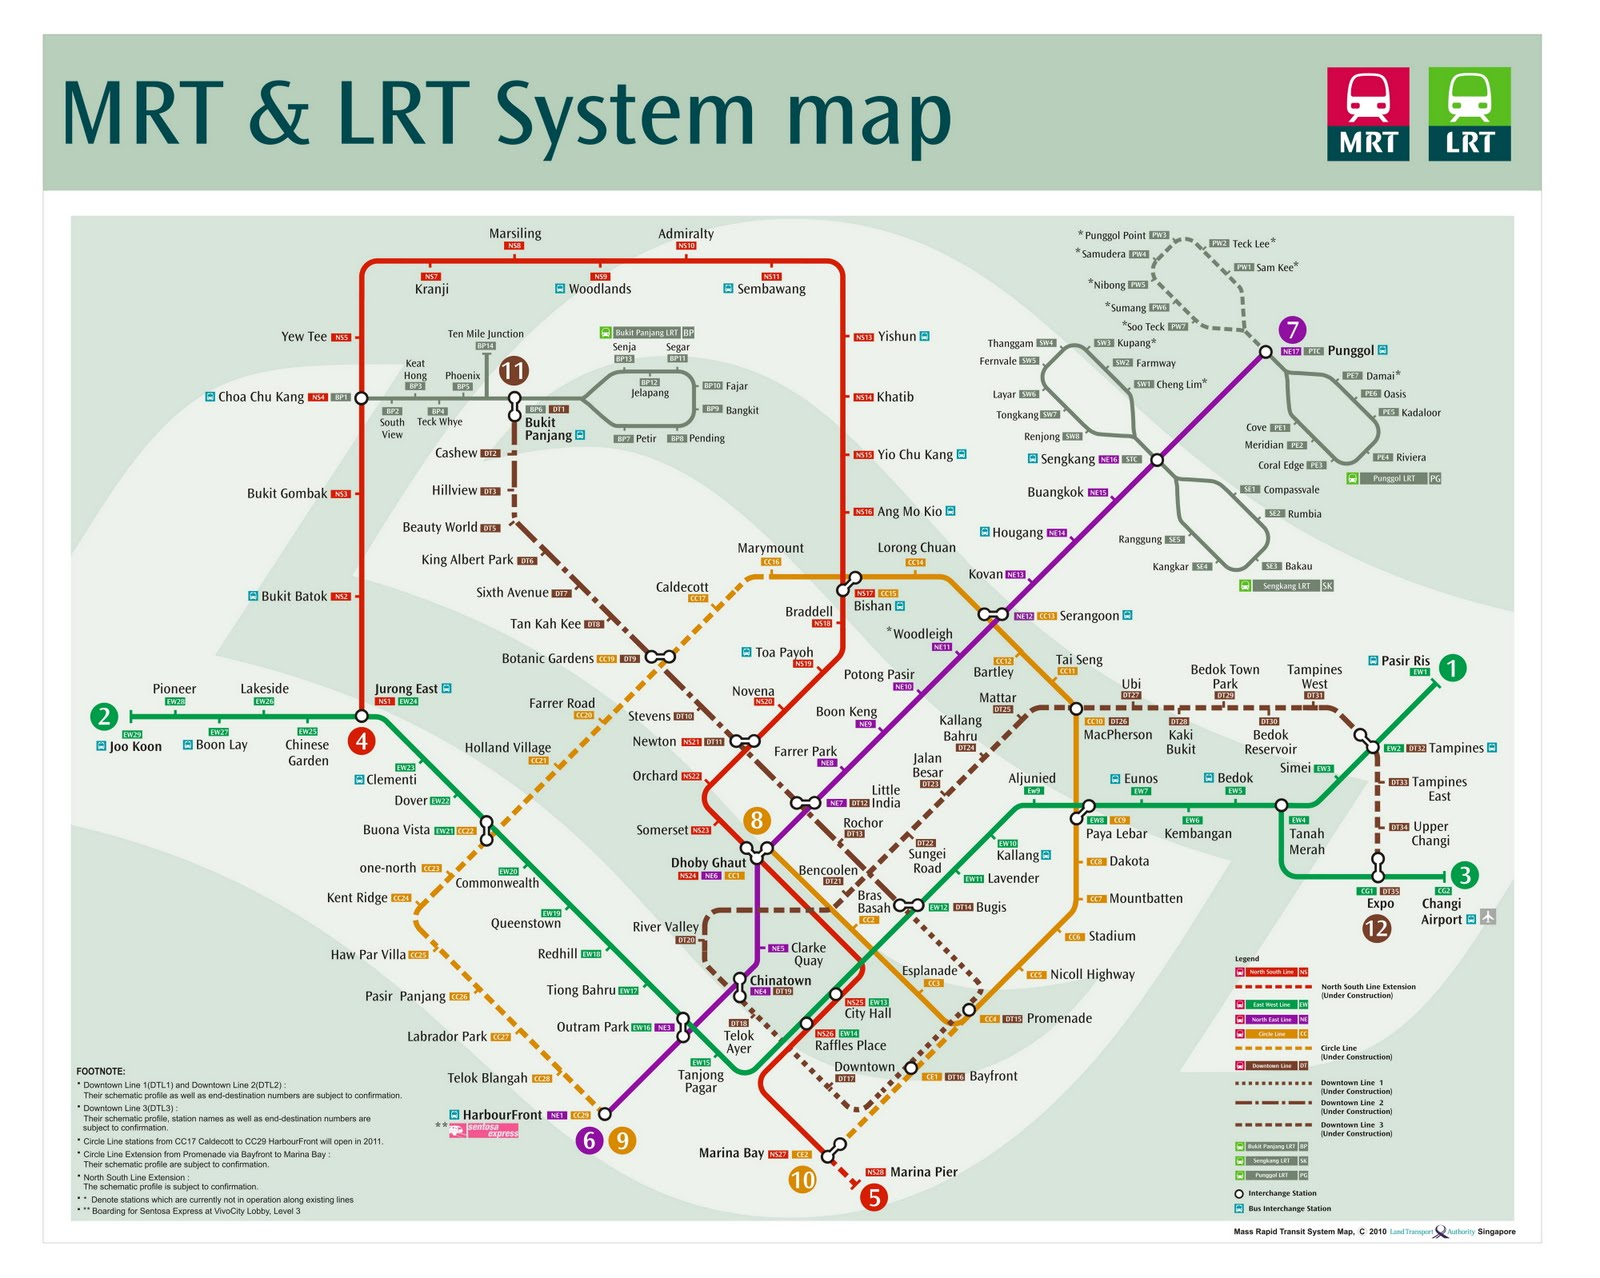 mrt lrt including circle and downtown lines system map